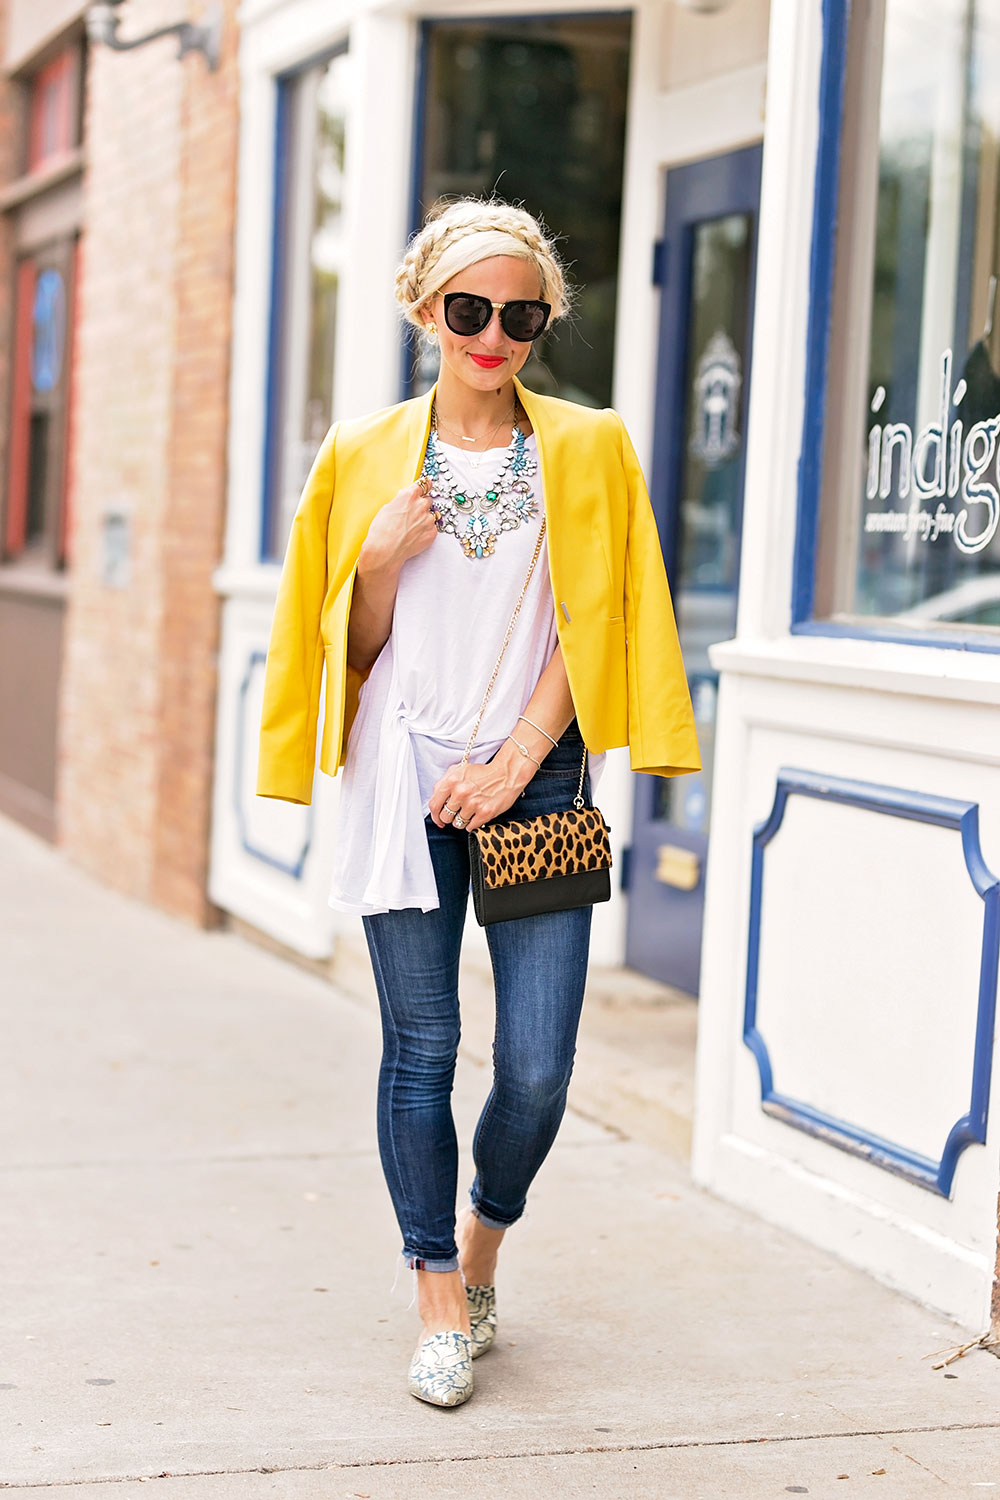 blazer jeans t-shirt outfit